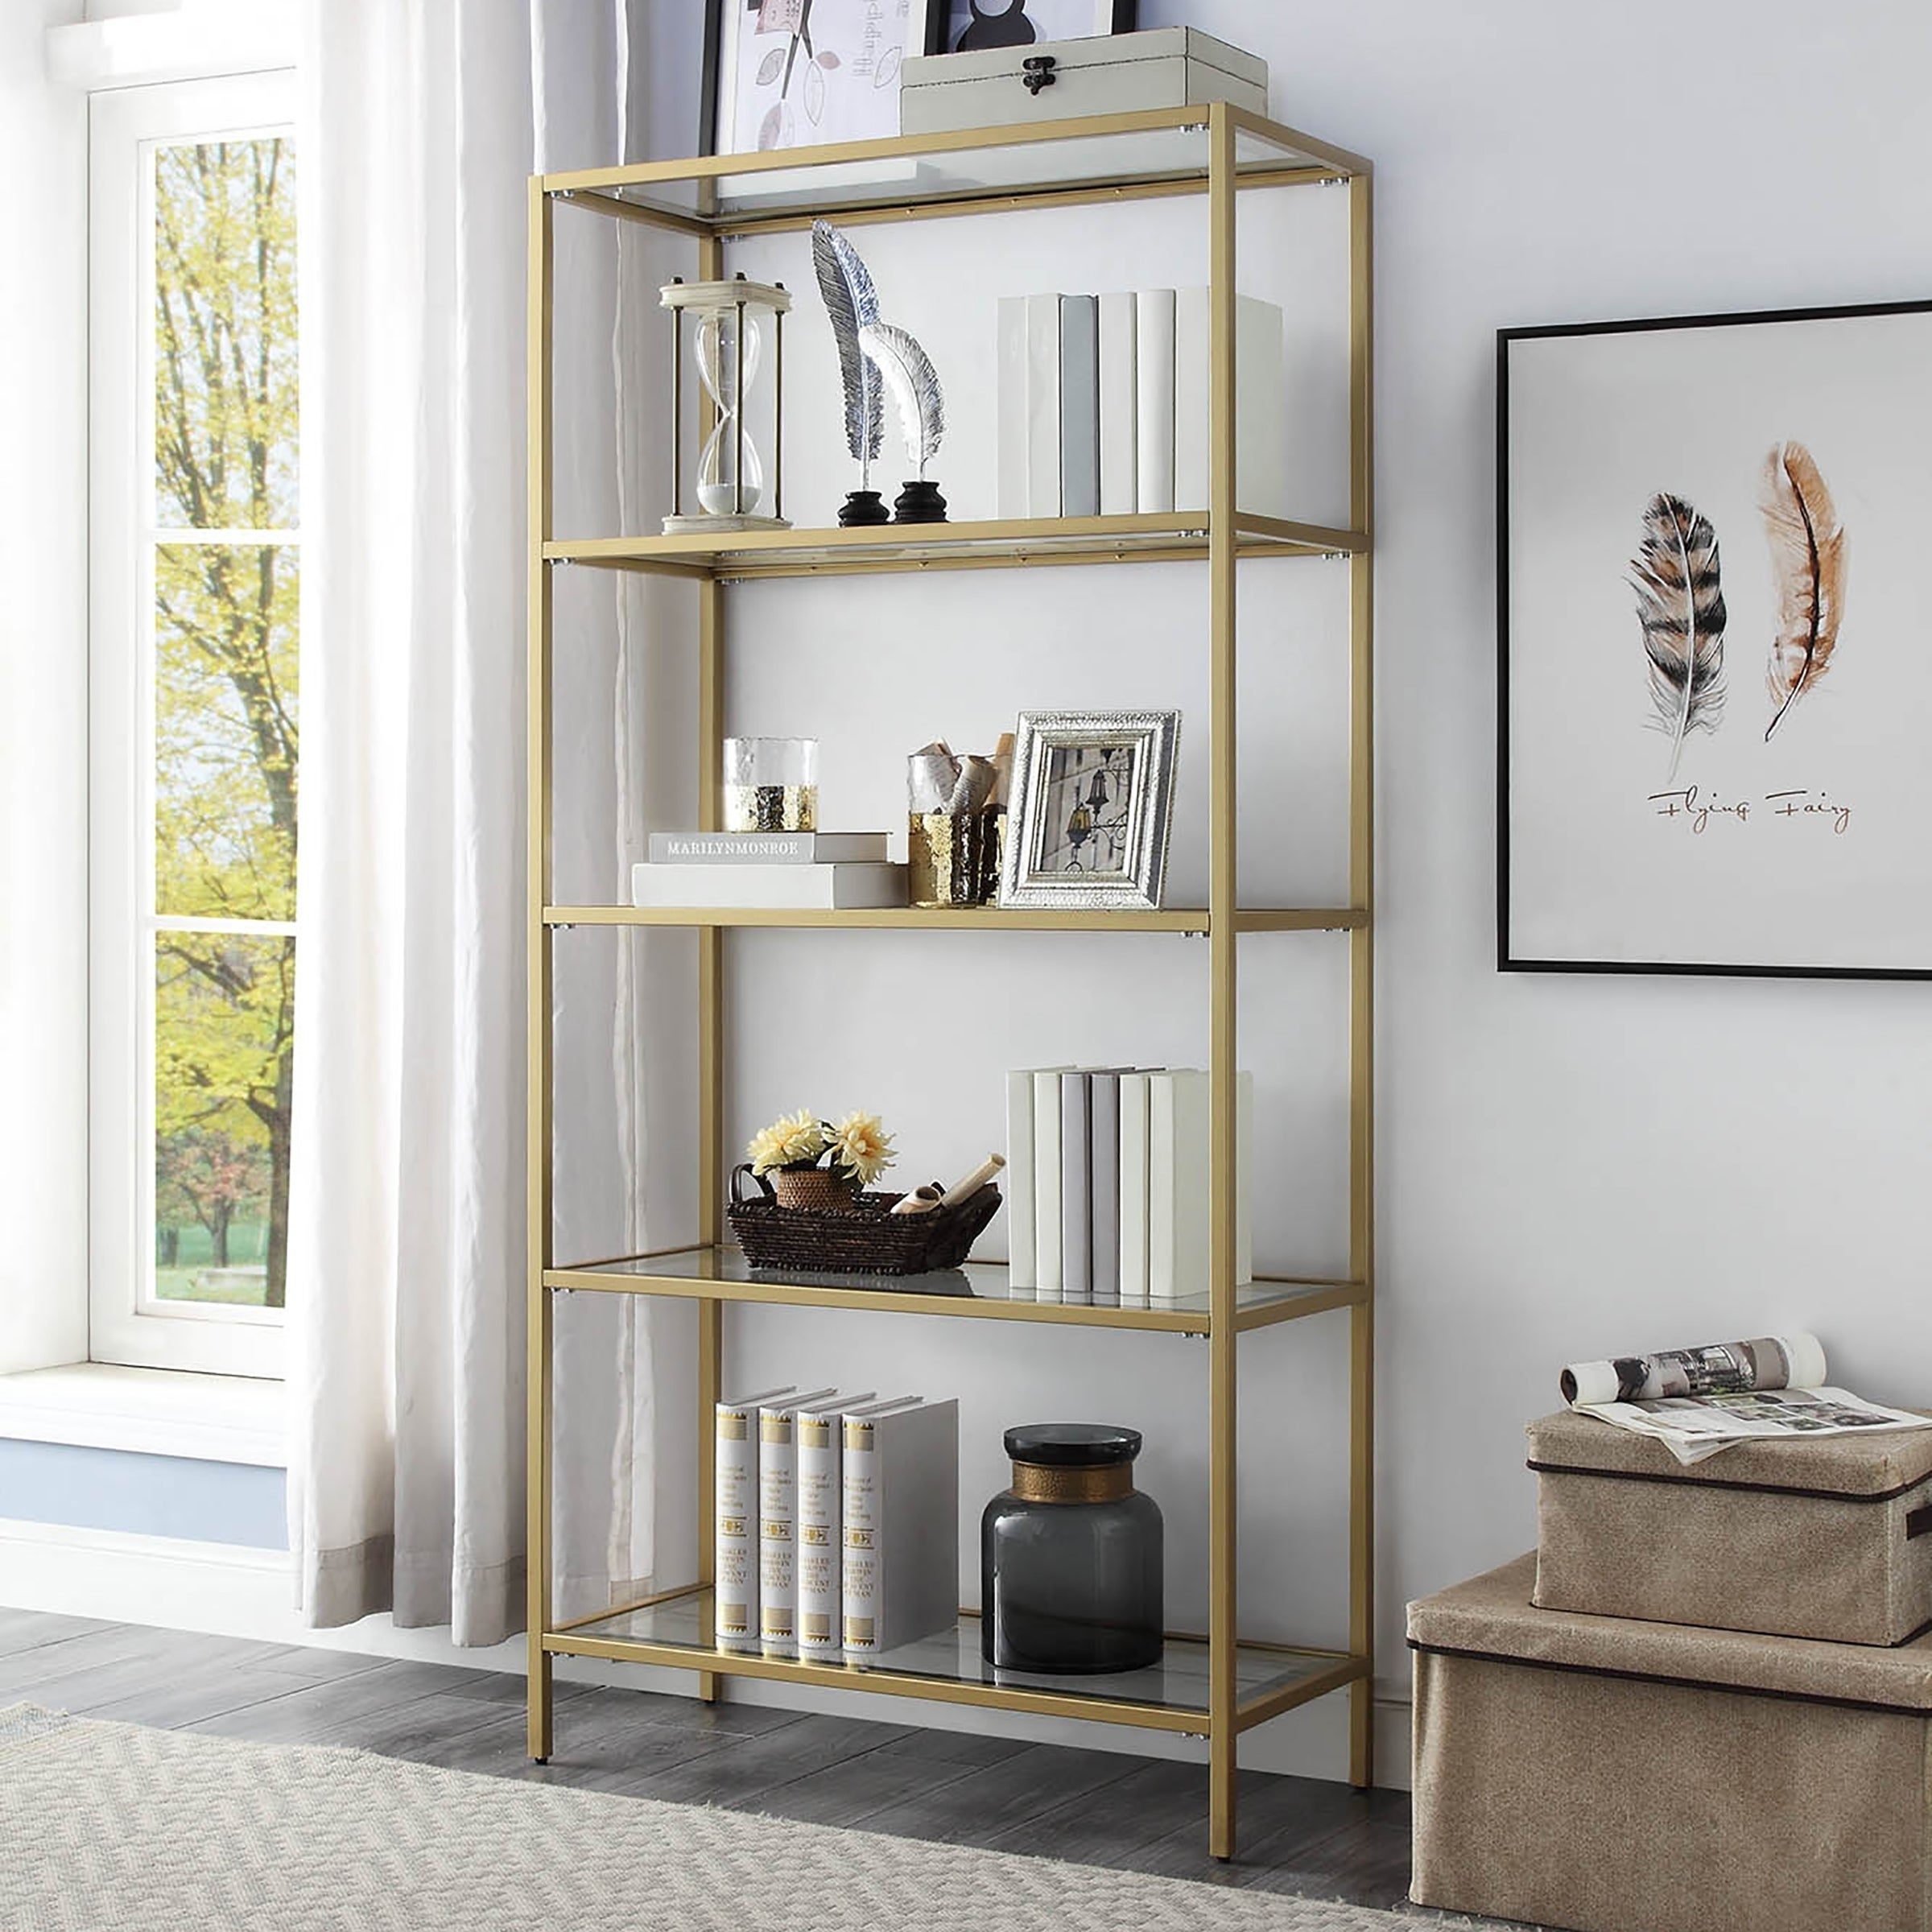 Buy Gold Bookshelves Bookcases Online At Overstock Our